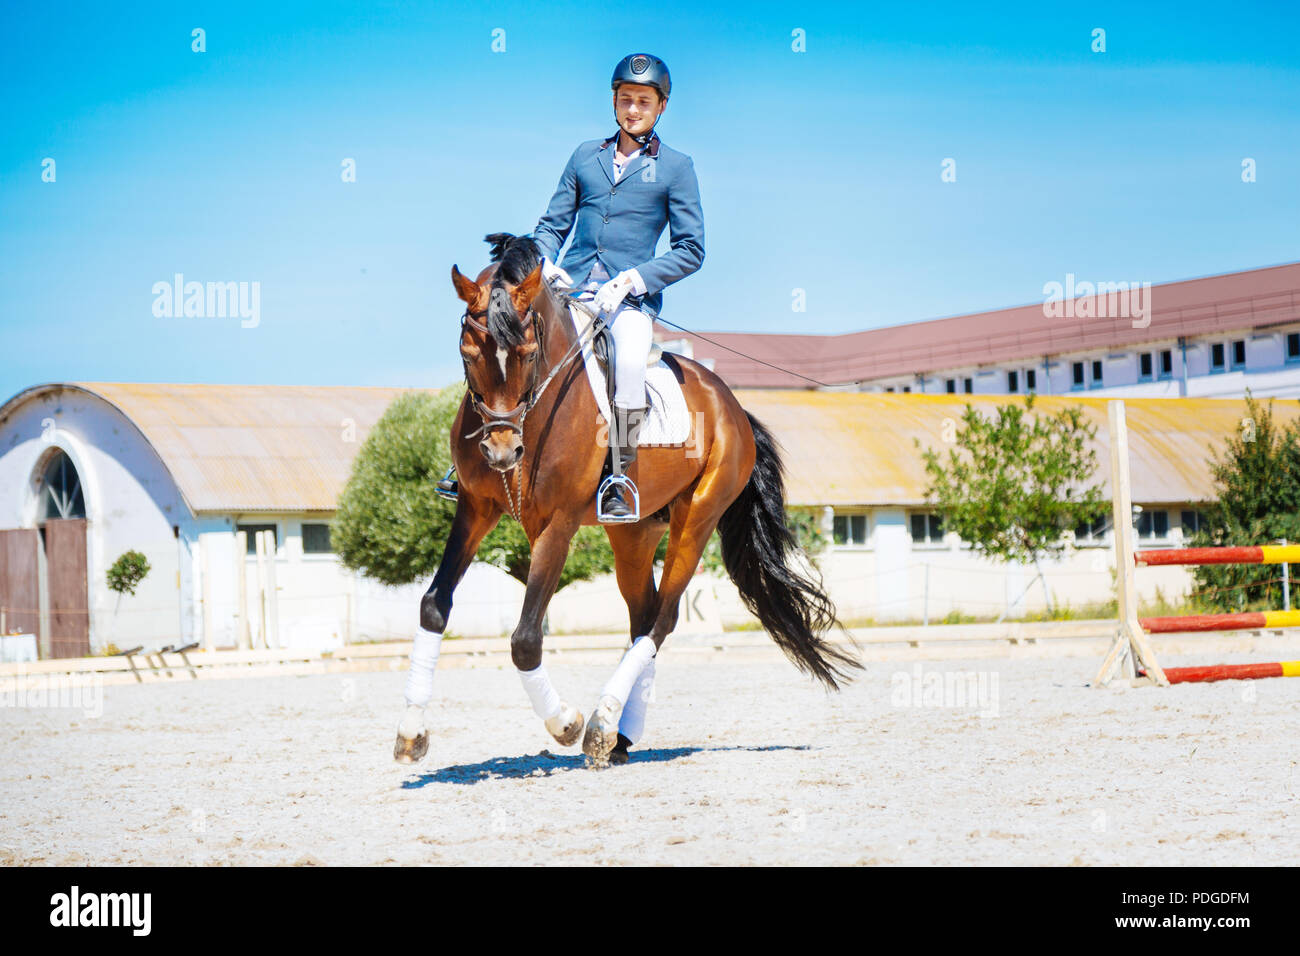 Horse man feeling active while riding his brown racehorse - Stock Image